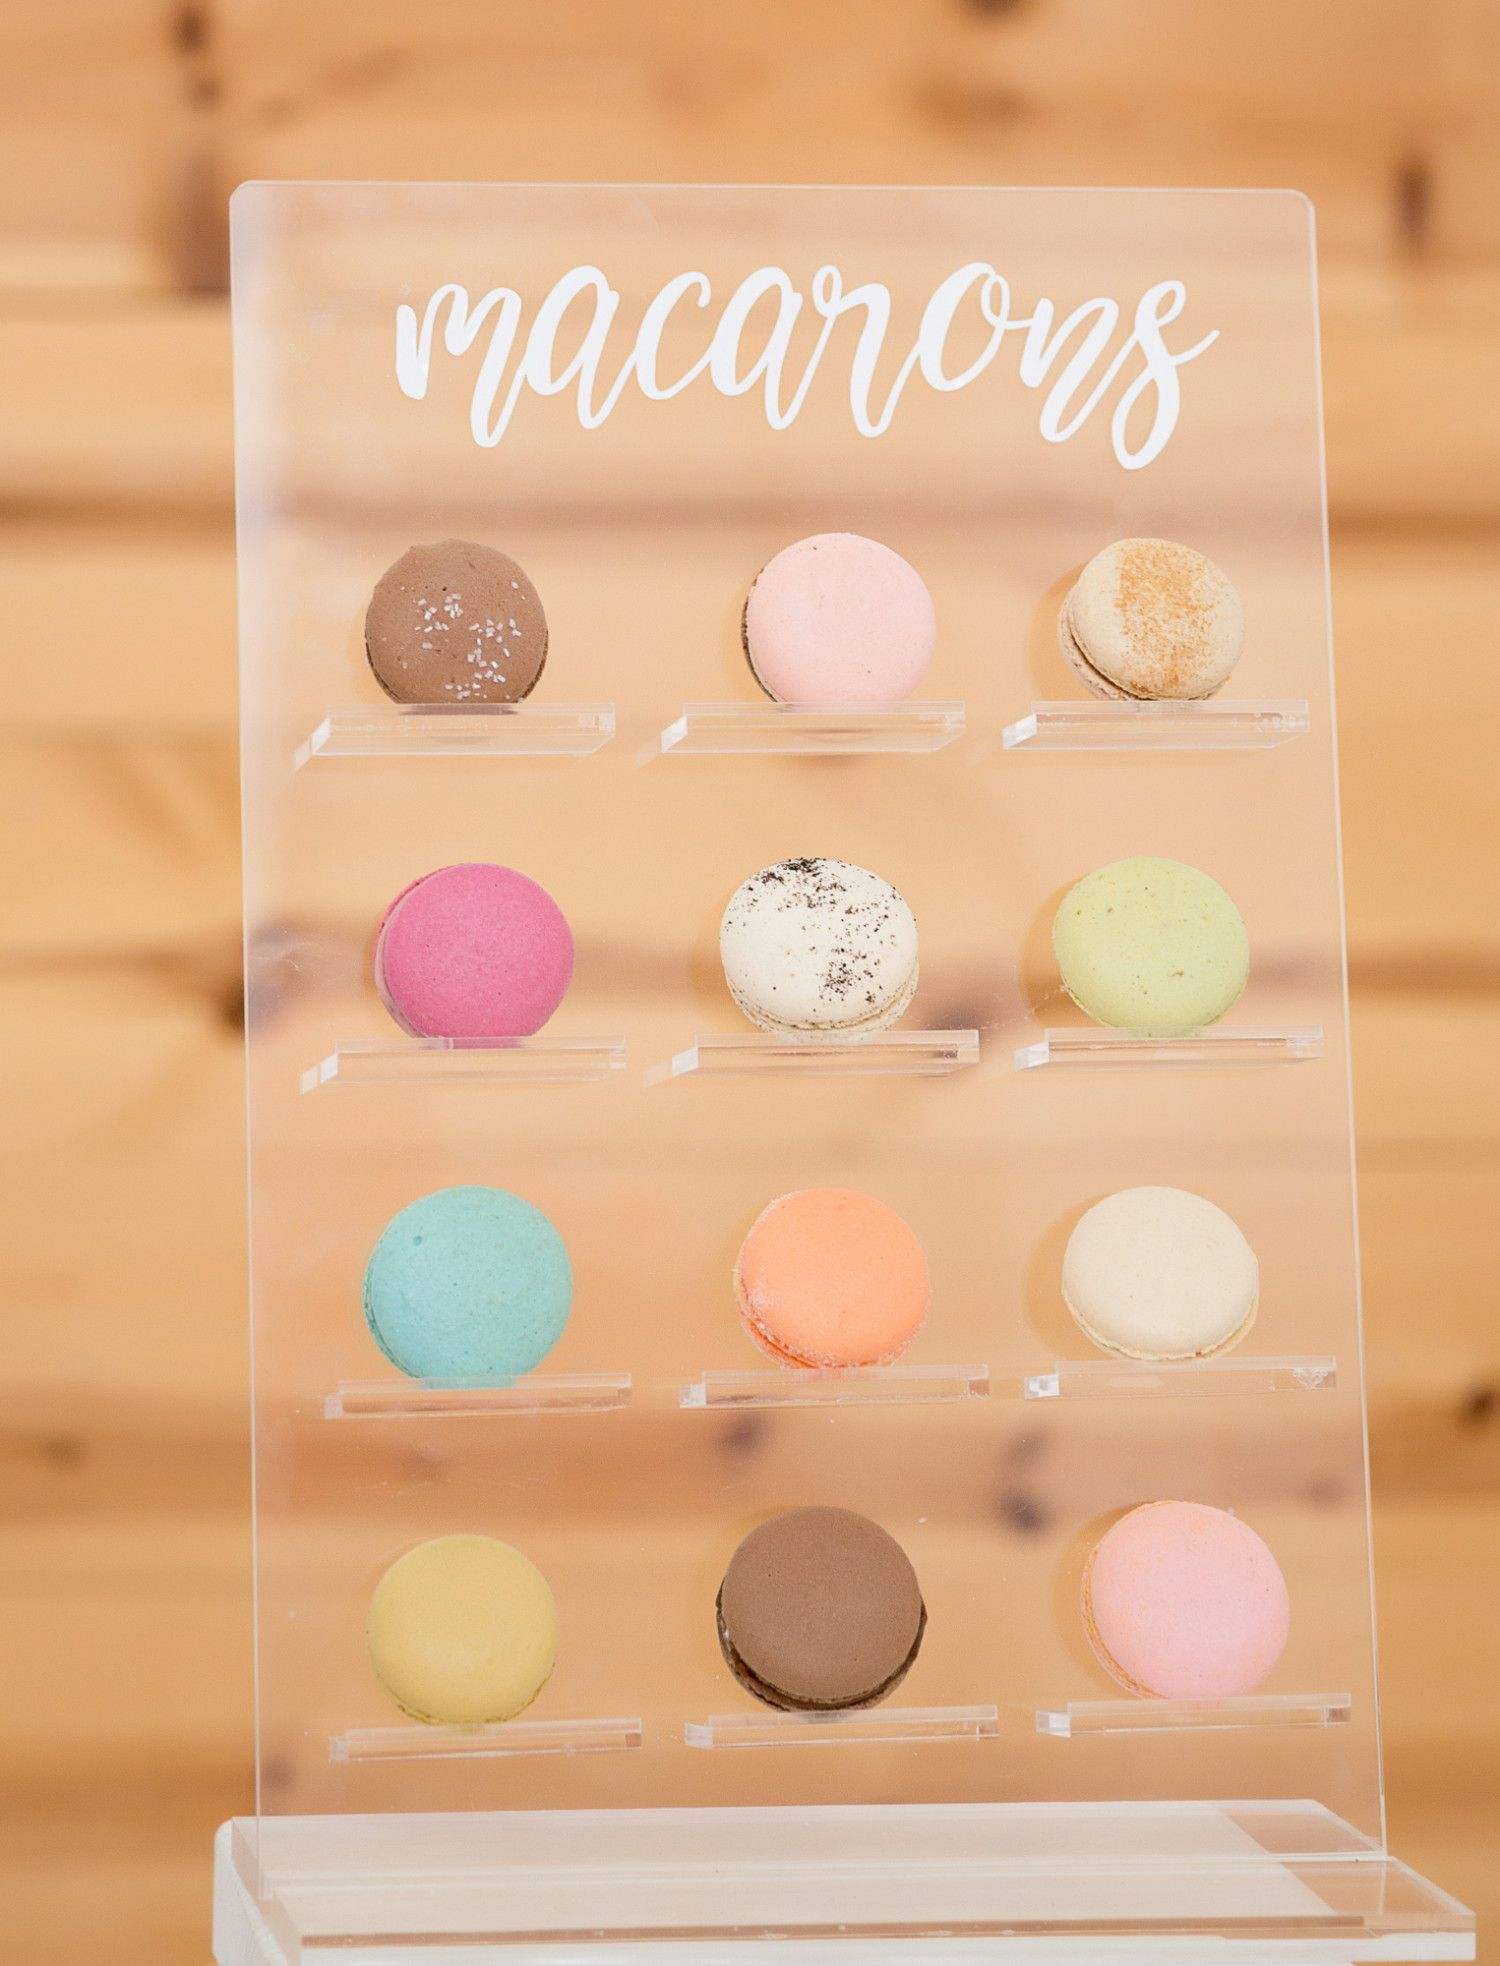 Winston Porter Family Recipe Macarons Removable Wall Decal Wayfair